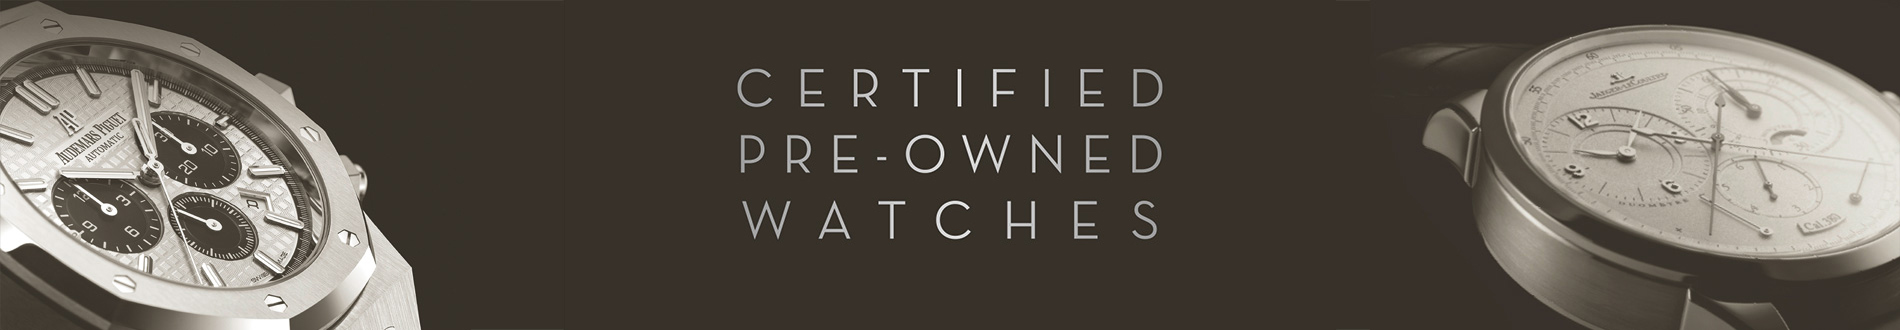 Certified Pre-Owened Watches